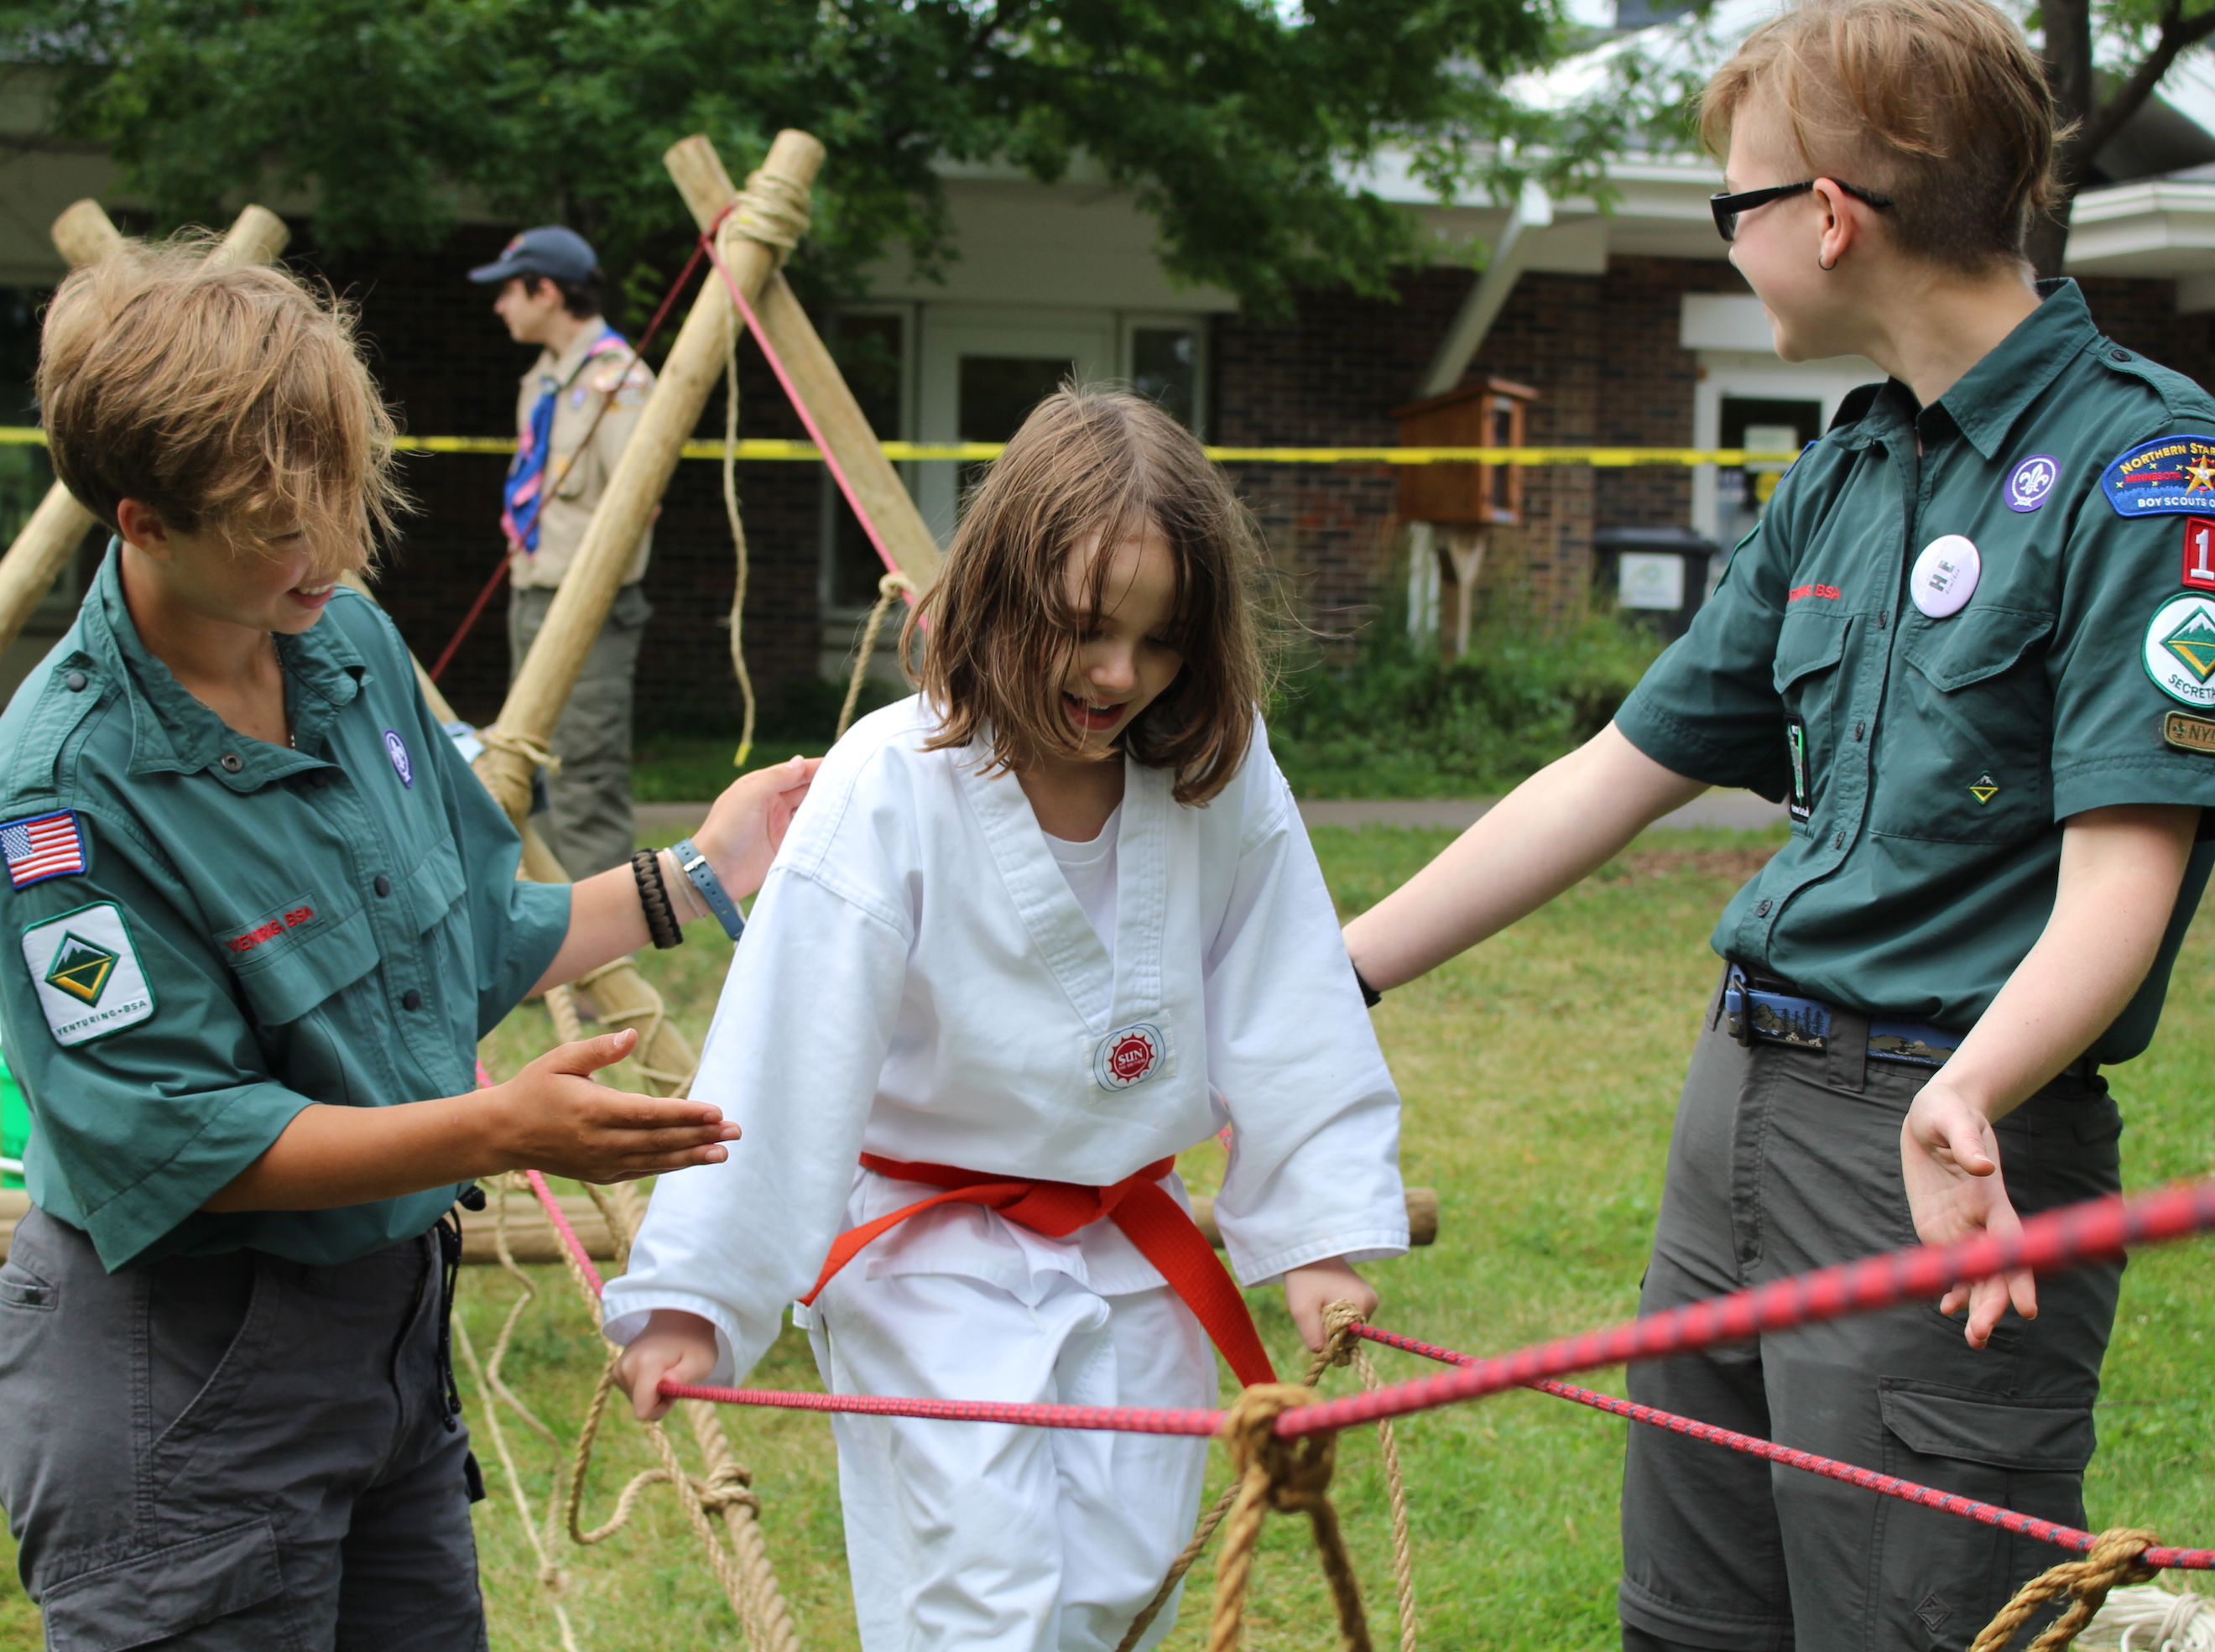 Victoria Johnson (left) and Beck Crain (right) of the Venturing program help Ruby Delaney cross an obstacle course at the festival.